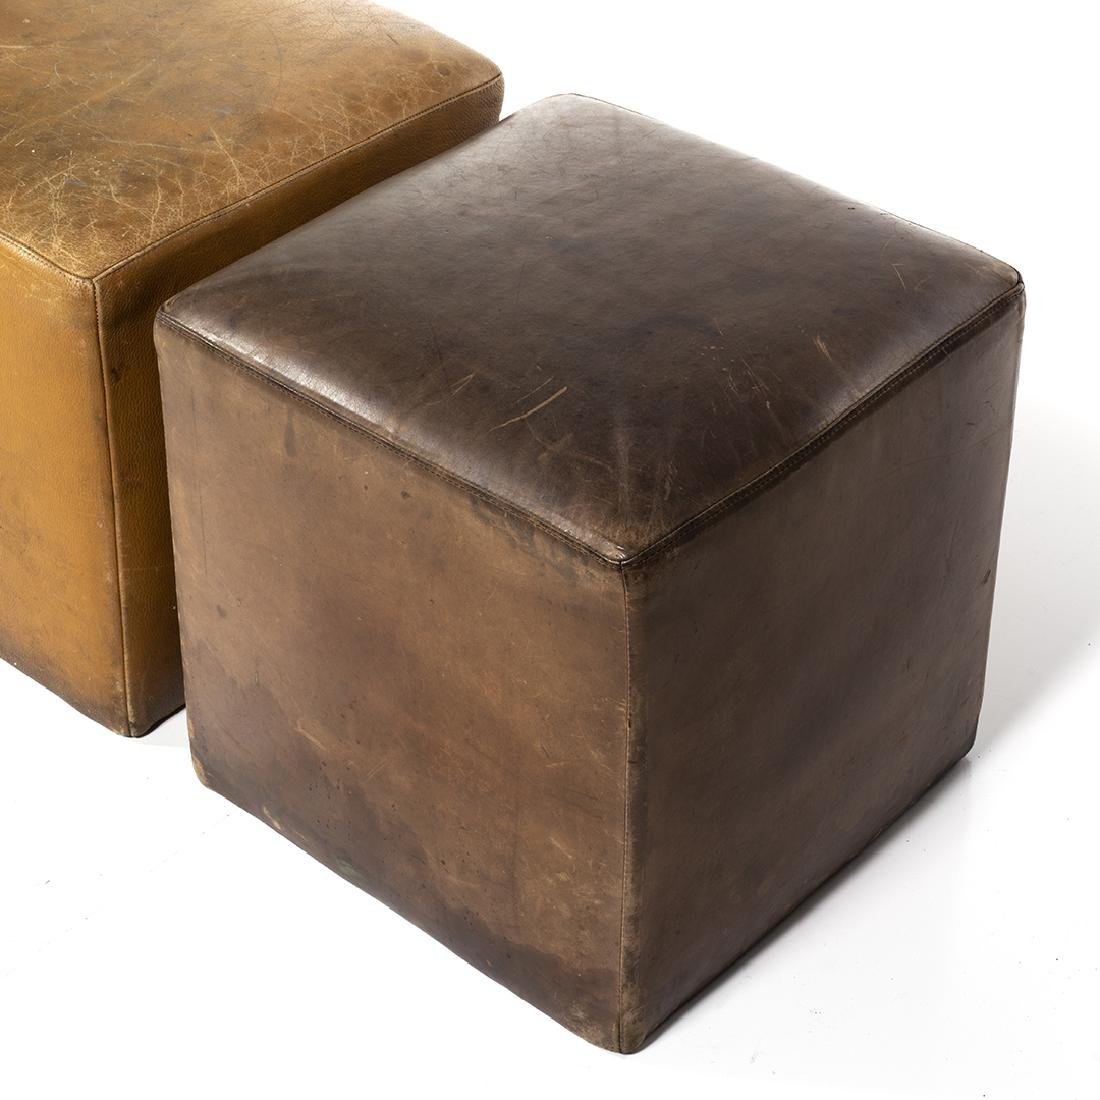 Distressed Leather Ottomans (4) - 4